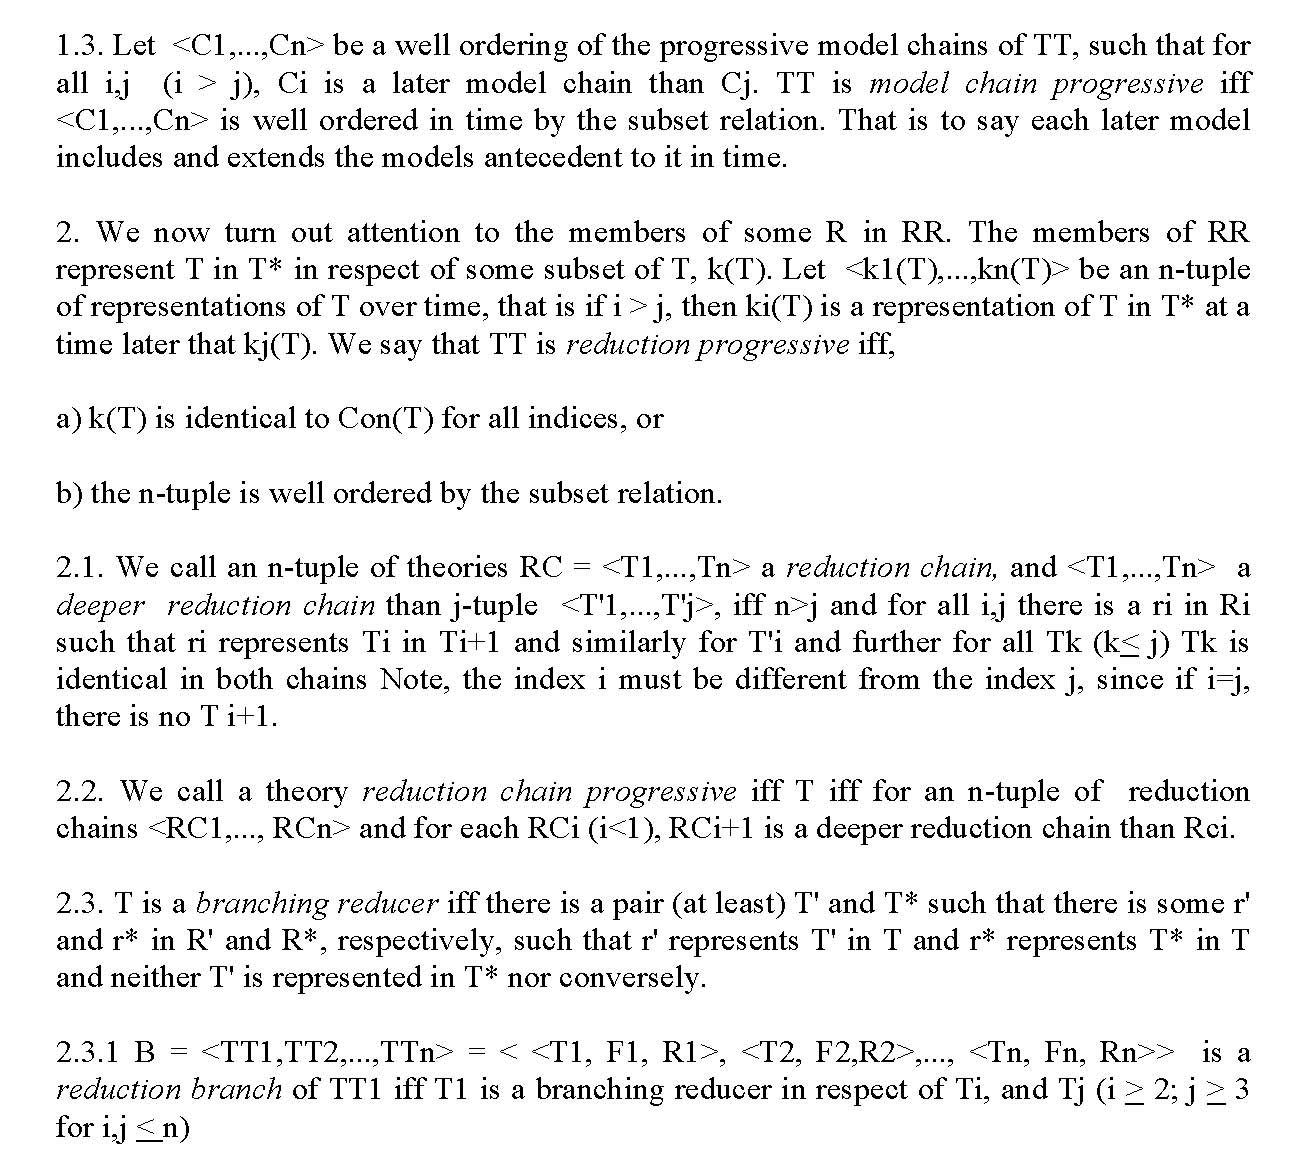 Issa proceedings 2010 arguing towards truth the case of the issa proceedings 2010 arguing towards truth the case of the periodic table rozenberg quarterly gamestrikefo Image collections